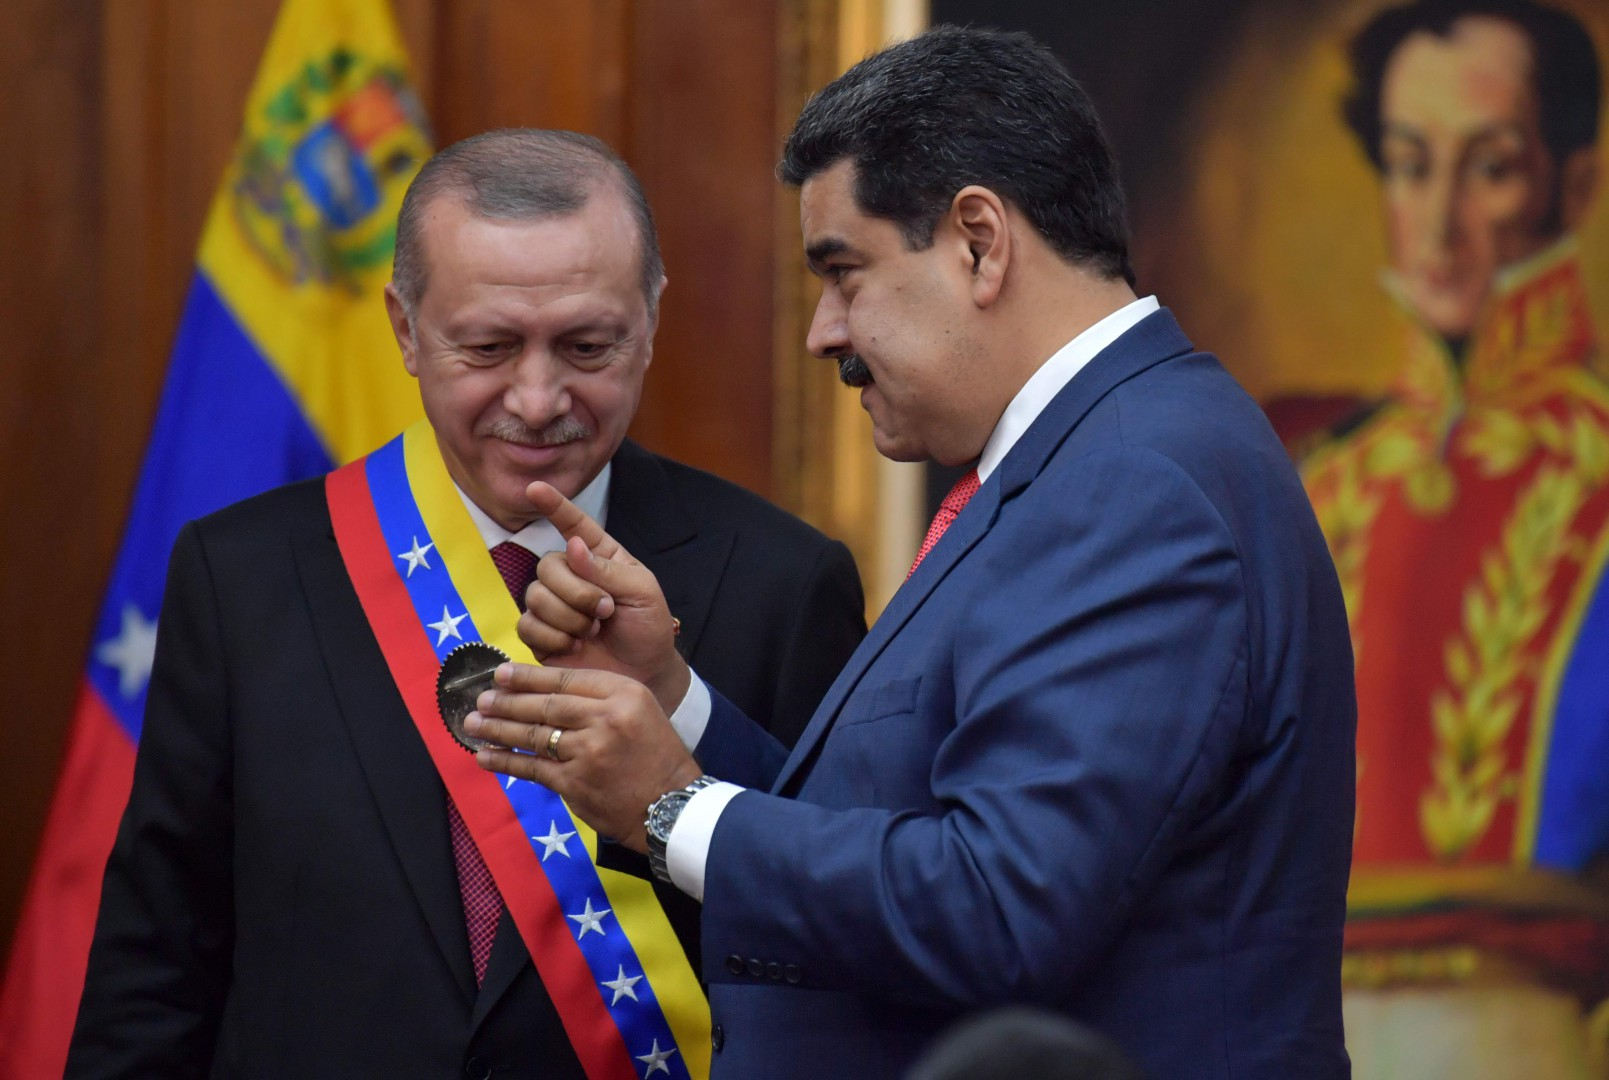 Venezuelan President Nicolas Maduro (R) decorates Turkish President Recep Tayyip Erdogan with the Order of the Liberator during a meeting at Miraflores Presidential Palace in Caracas, on December 3, 2018. (Photo by Yuri CORTEZ / AFP)